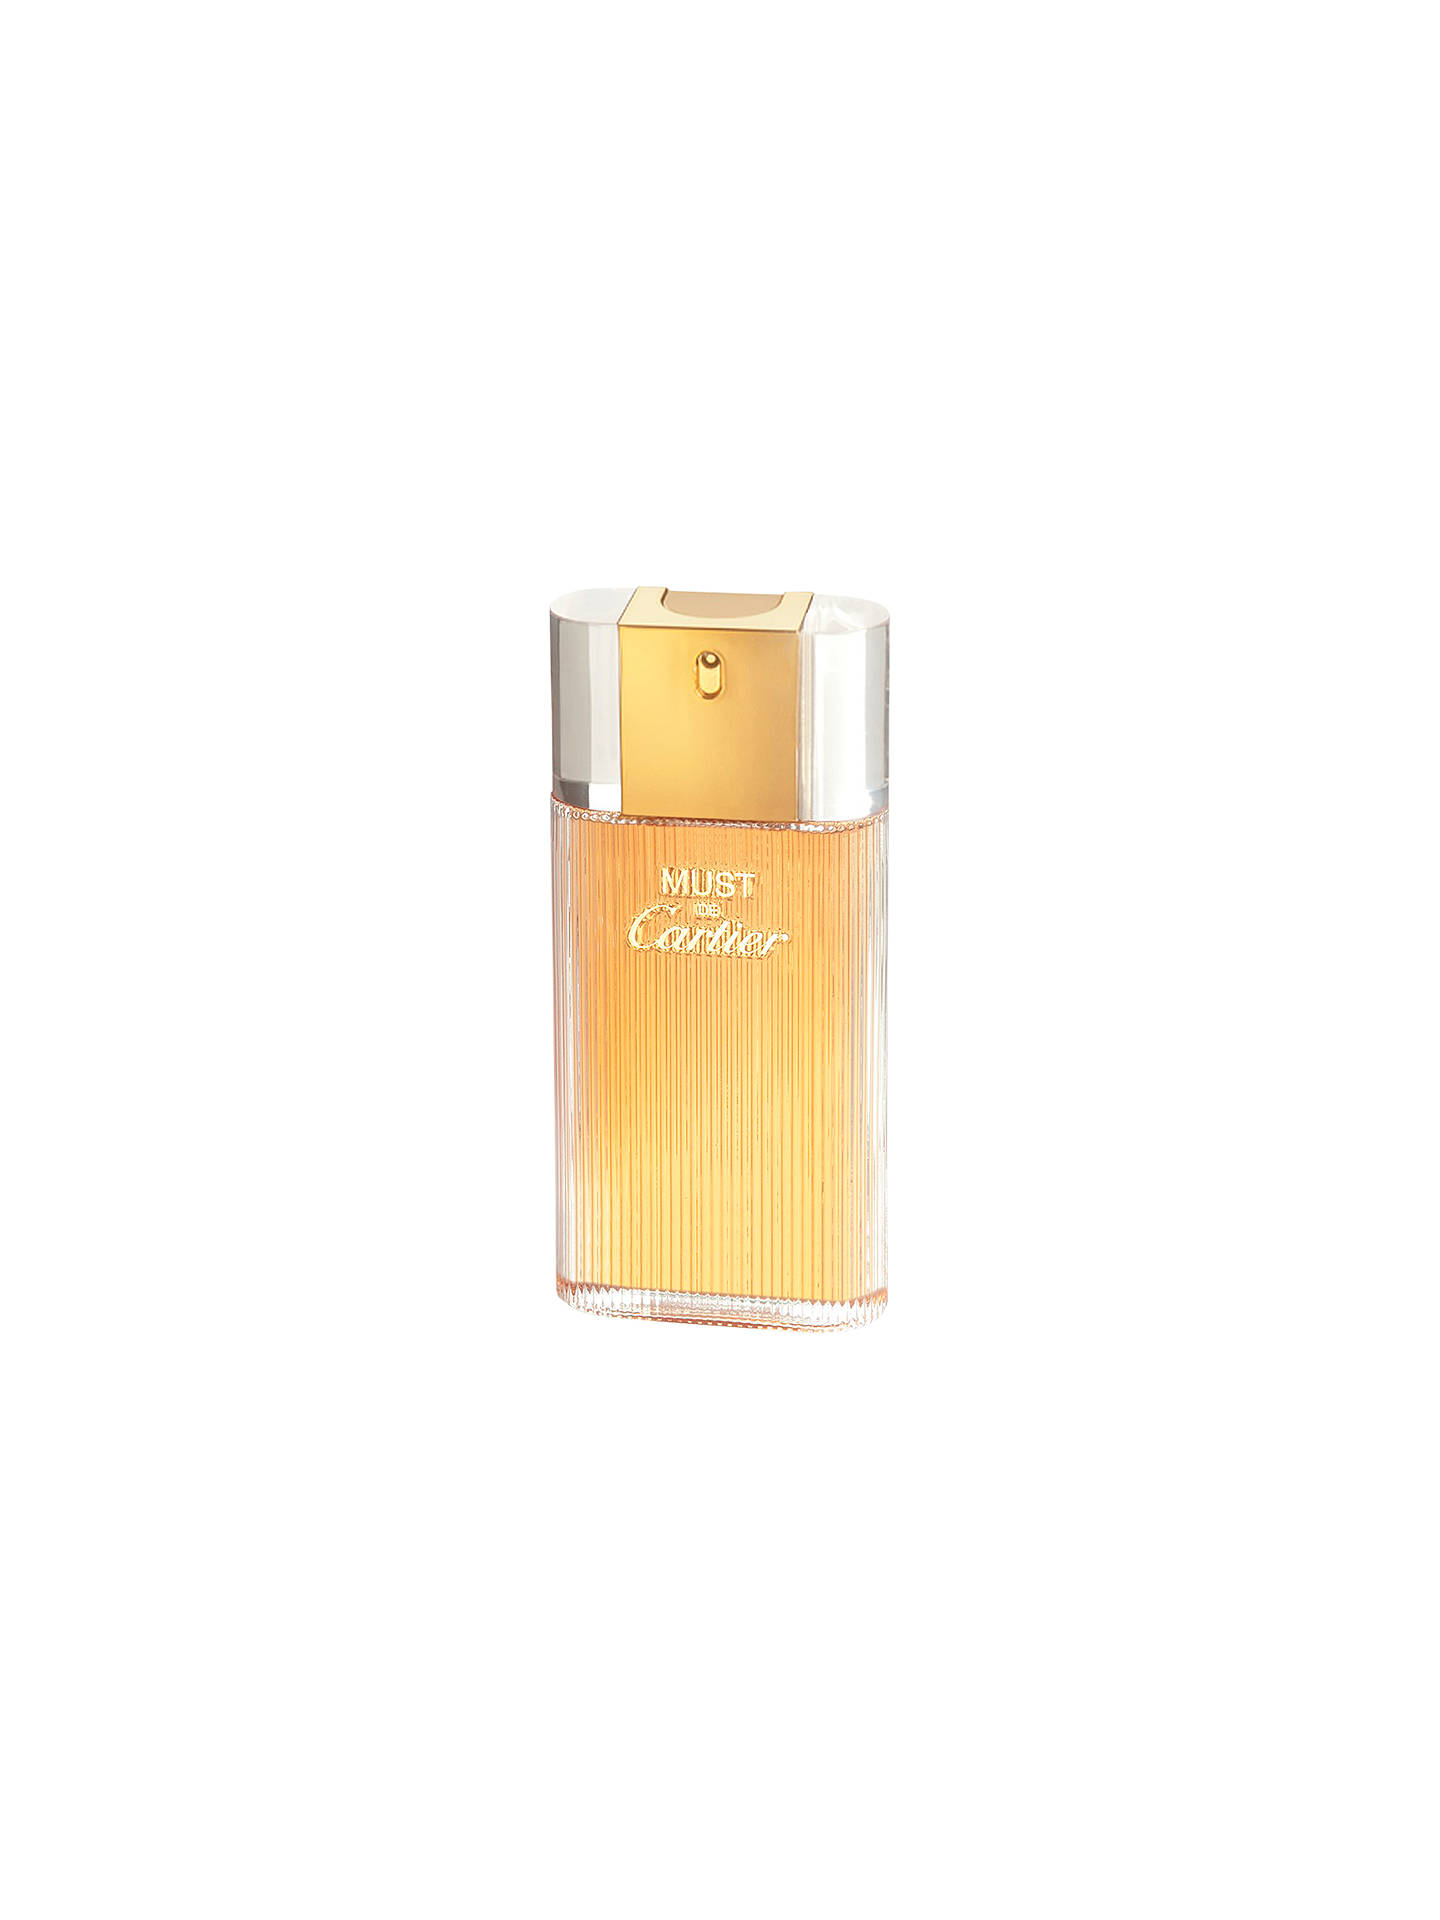 b5e5e0b64d3 Cartier Must de Cartier Eau de Toilette Spray at John Lewis   Partners